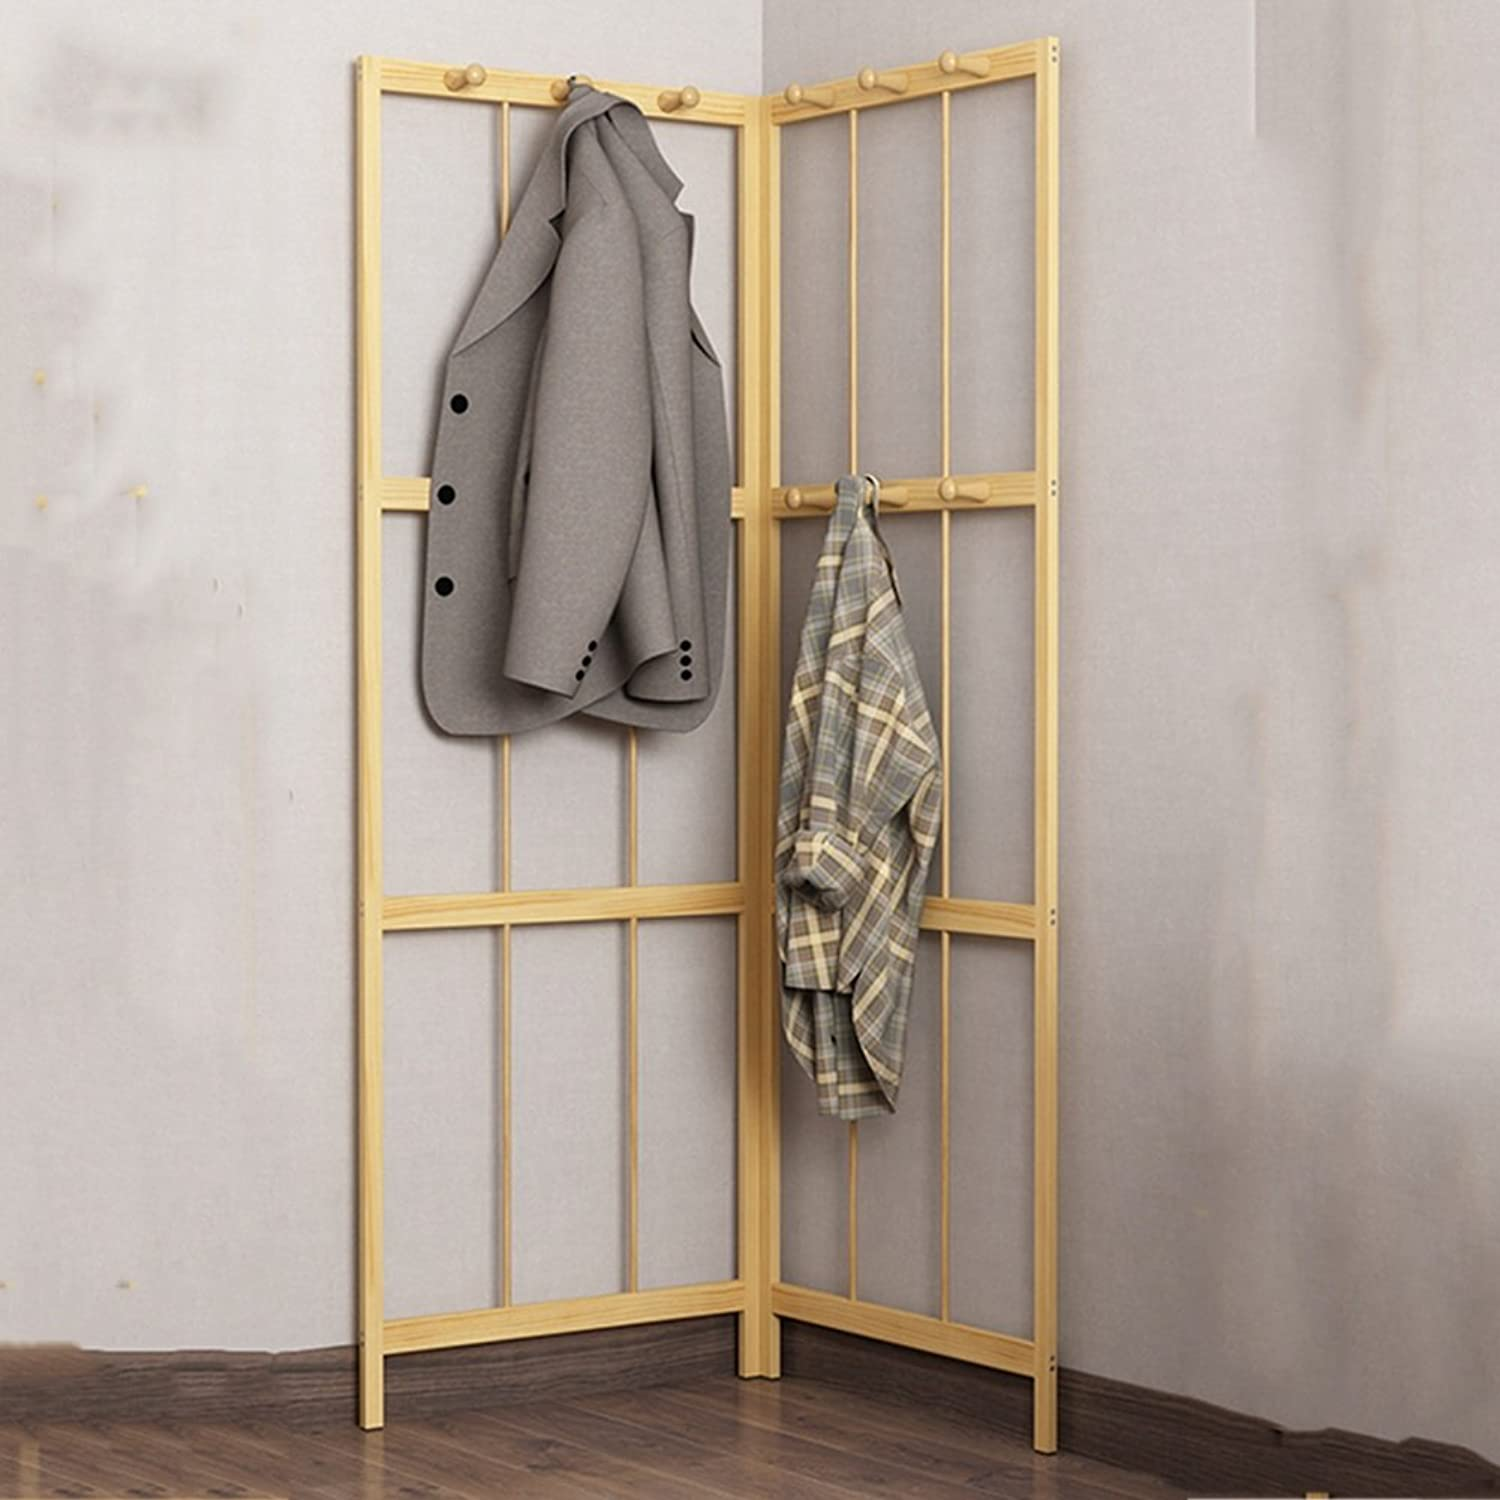 Floor Standing Hat and Coat Coat Rack Clothes Hat Tree Corner Coat Rack Floor Wall Hanger Solid Wood Shelf Stand Bag Holder (Nan Zhu Pine Board 57cm57cm114cm) ZHANGQIANG (Size   Pine - Two)